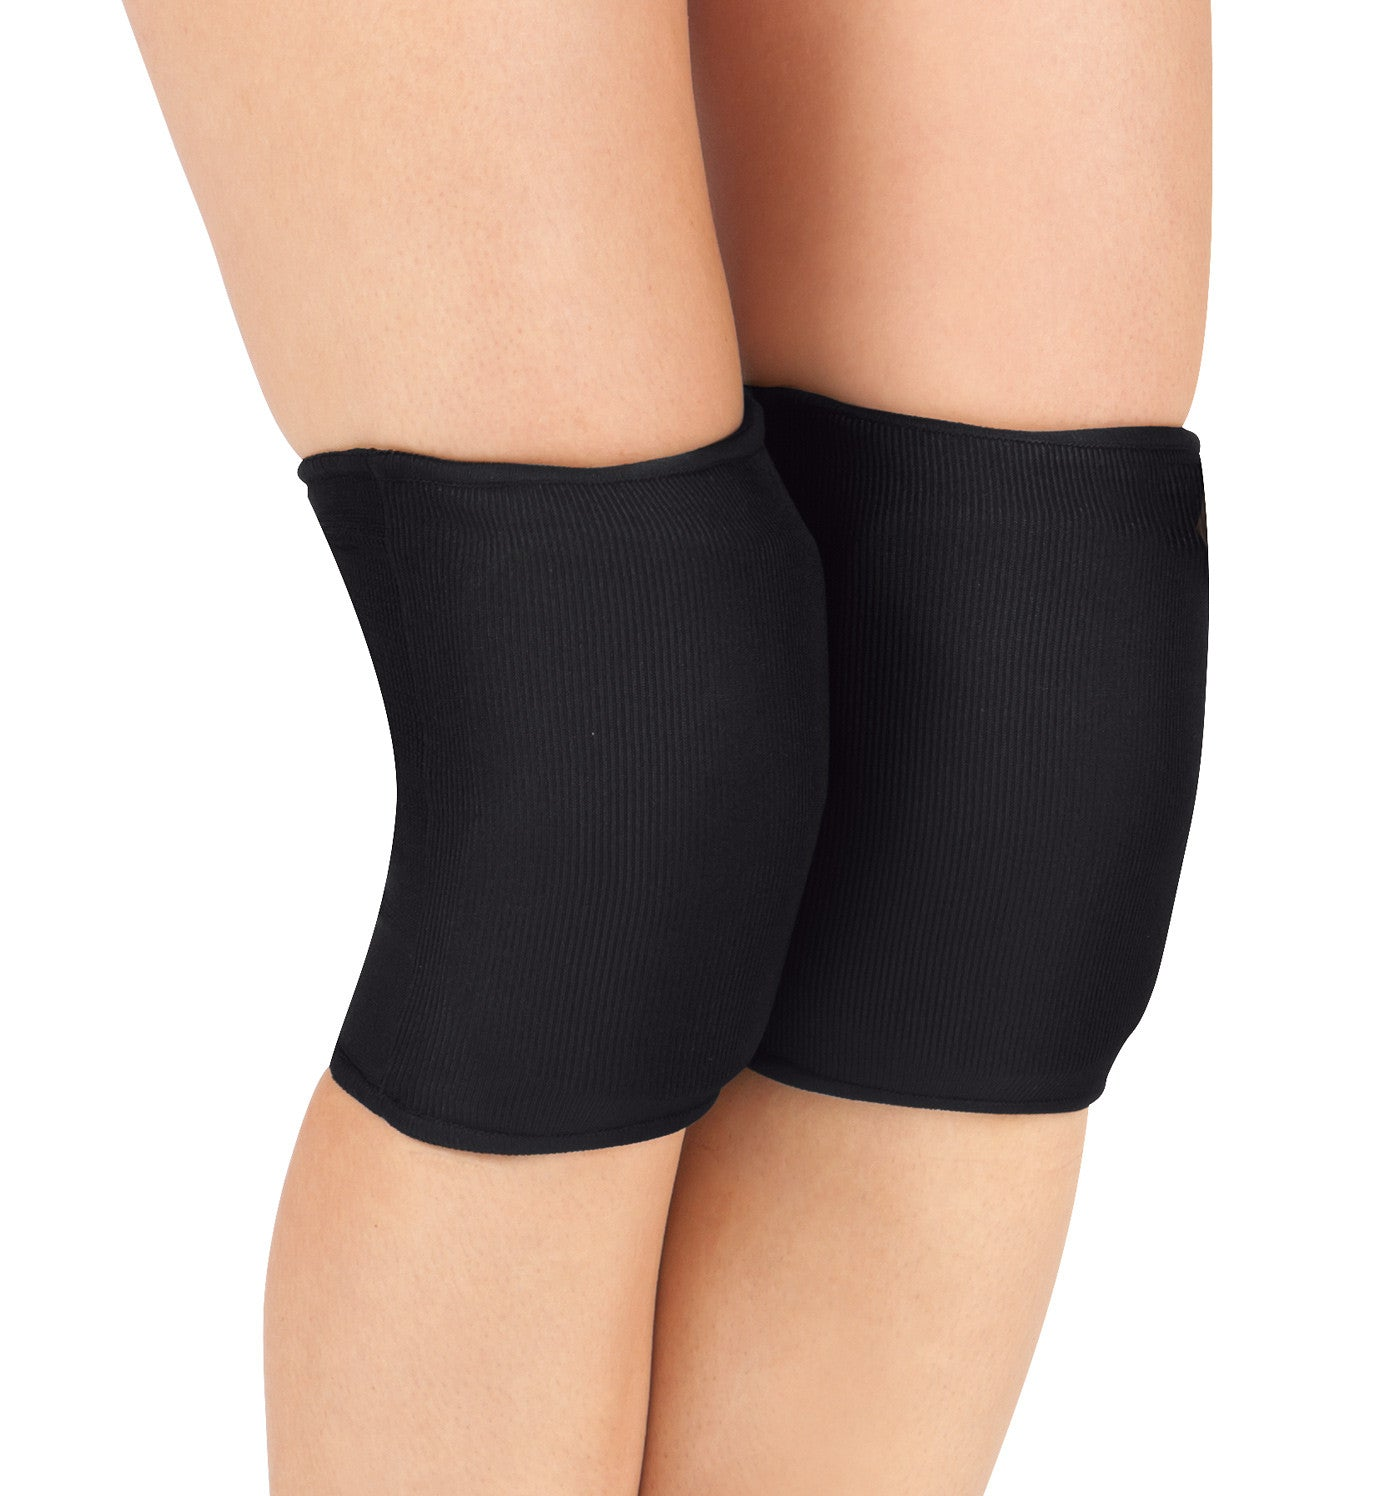 Black Knee or Elbow Pads